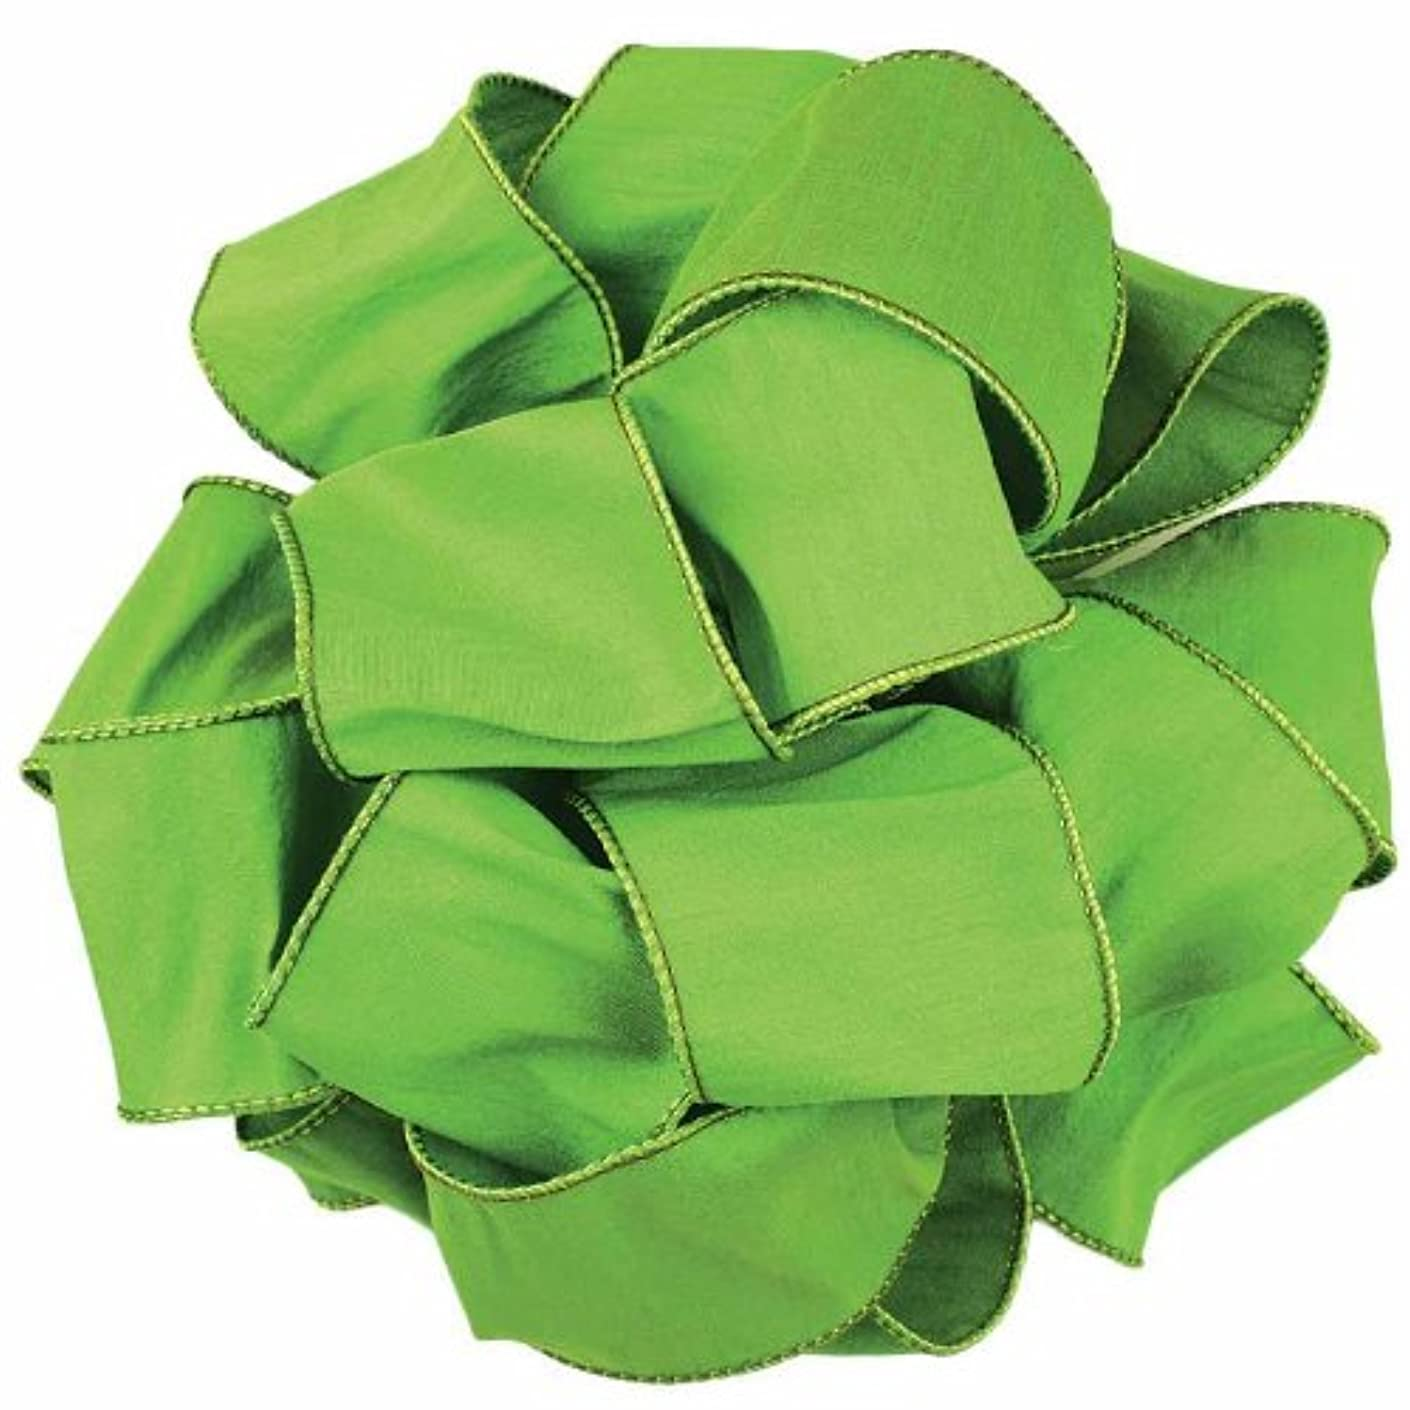 Offray Anisha Wired Edge Ribbon, 1-1/2-Inch by 25-Yard, Parrot Green